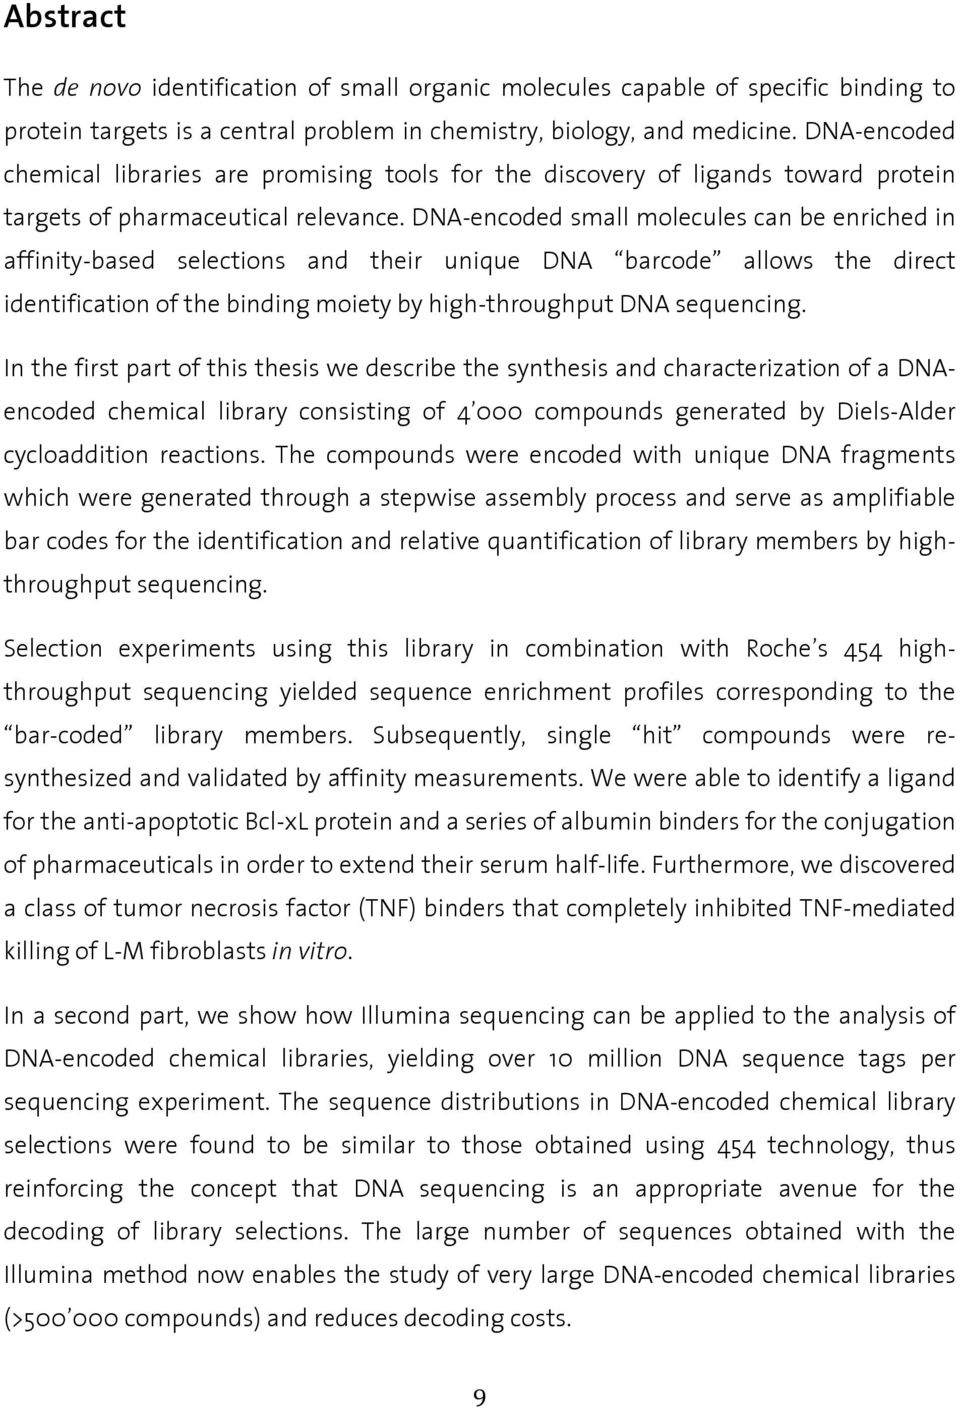 DNA-encoded small molecules can be enriched in affinity-based selections and their unique DNA barcode allows the direct identification of the binding moiety by high-throughput DNA sequencing.